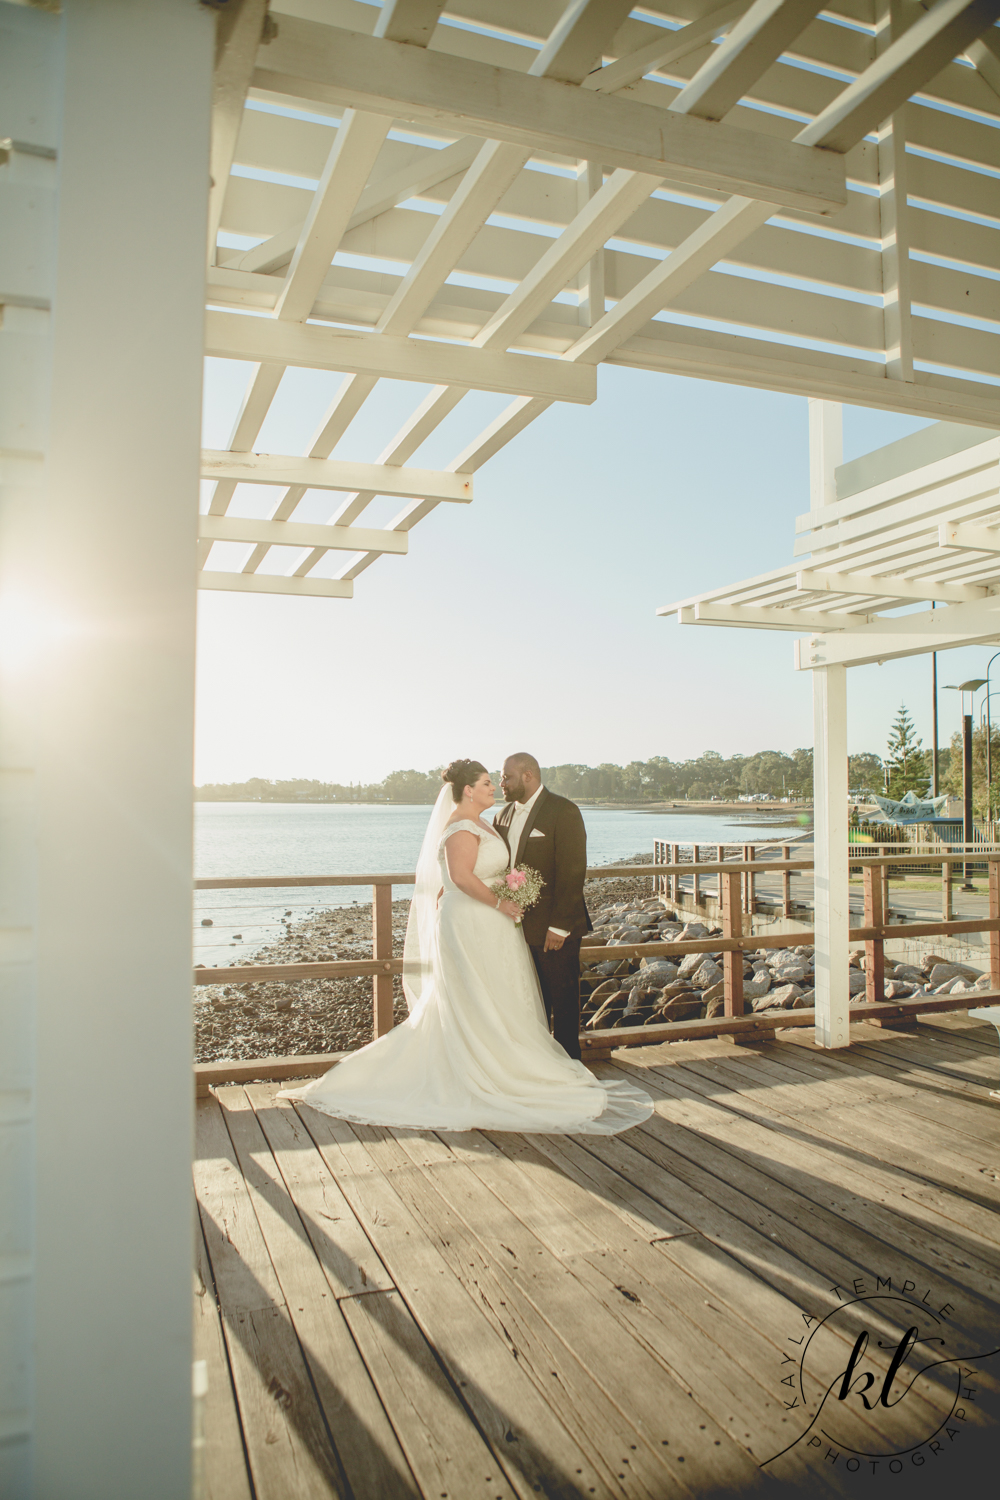 Brisbane_Wedding_Photographer-93.jpg